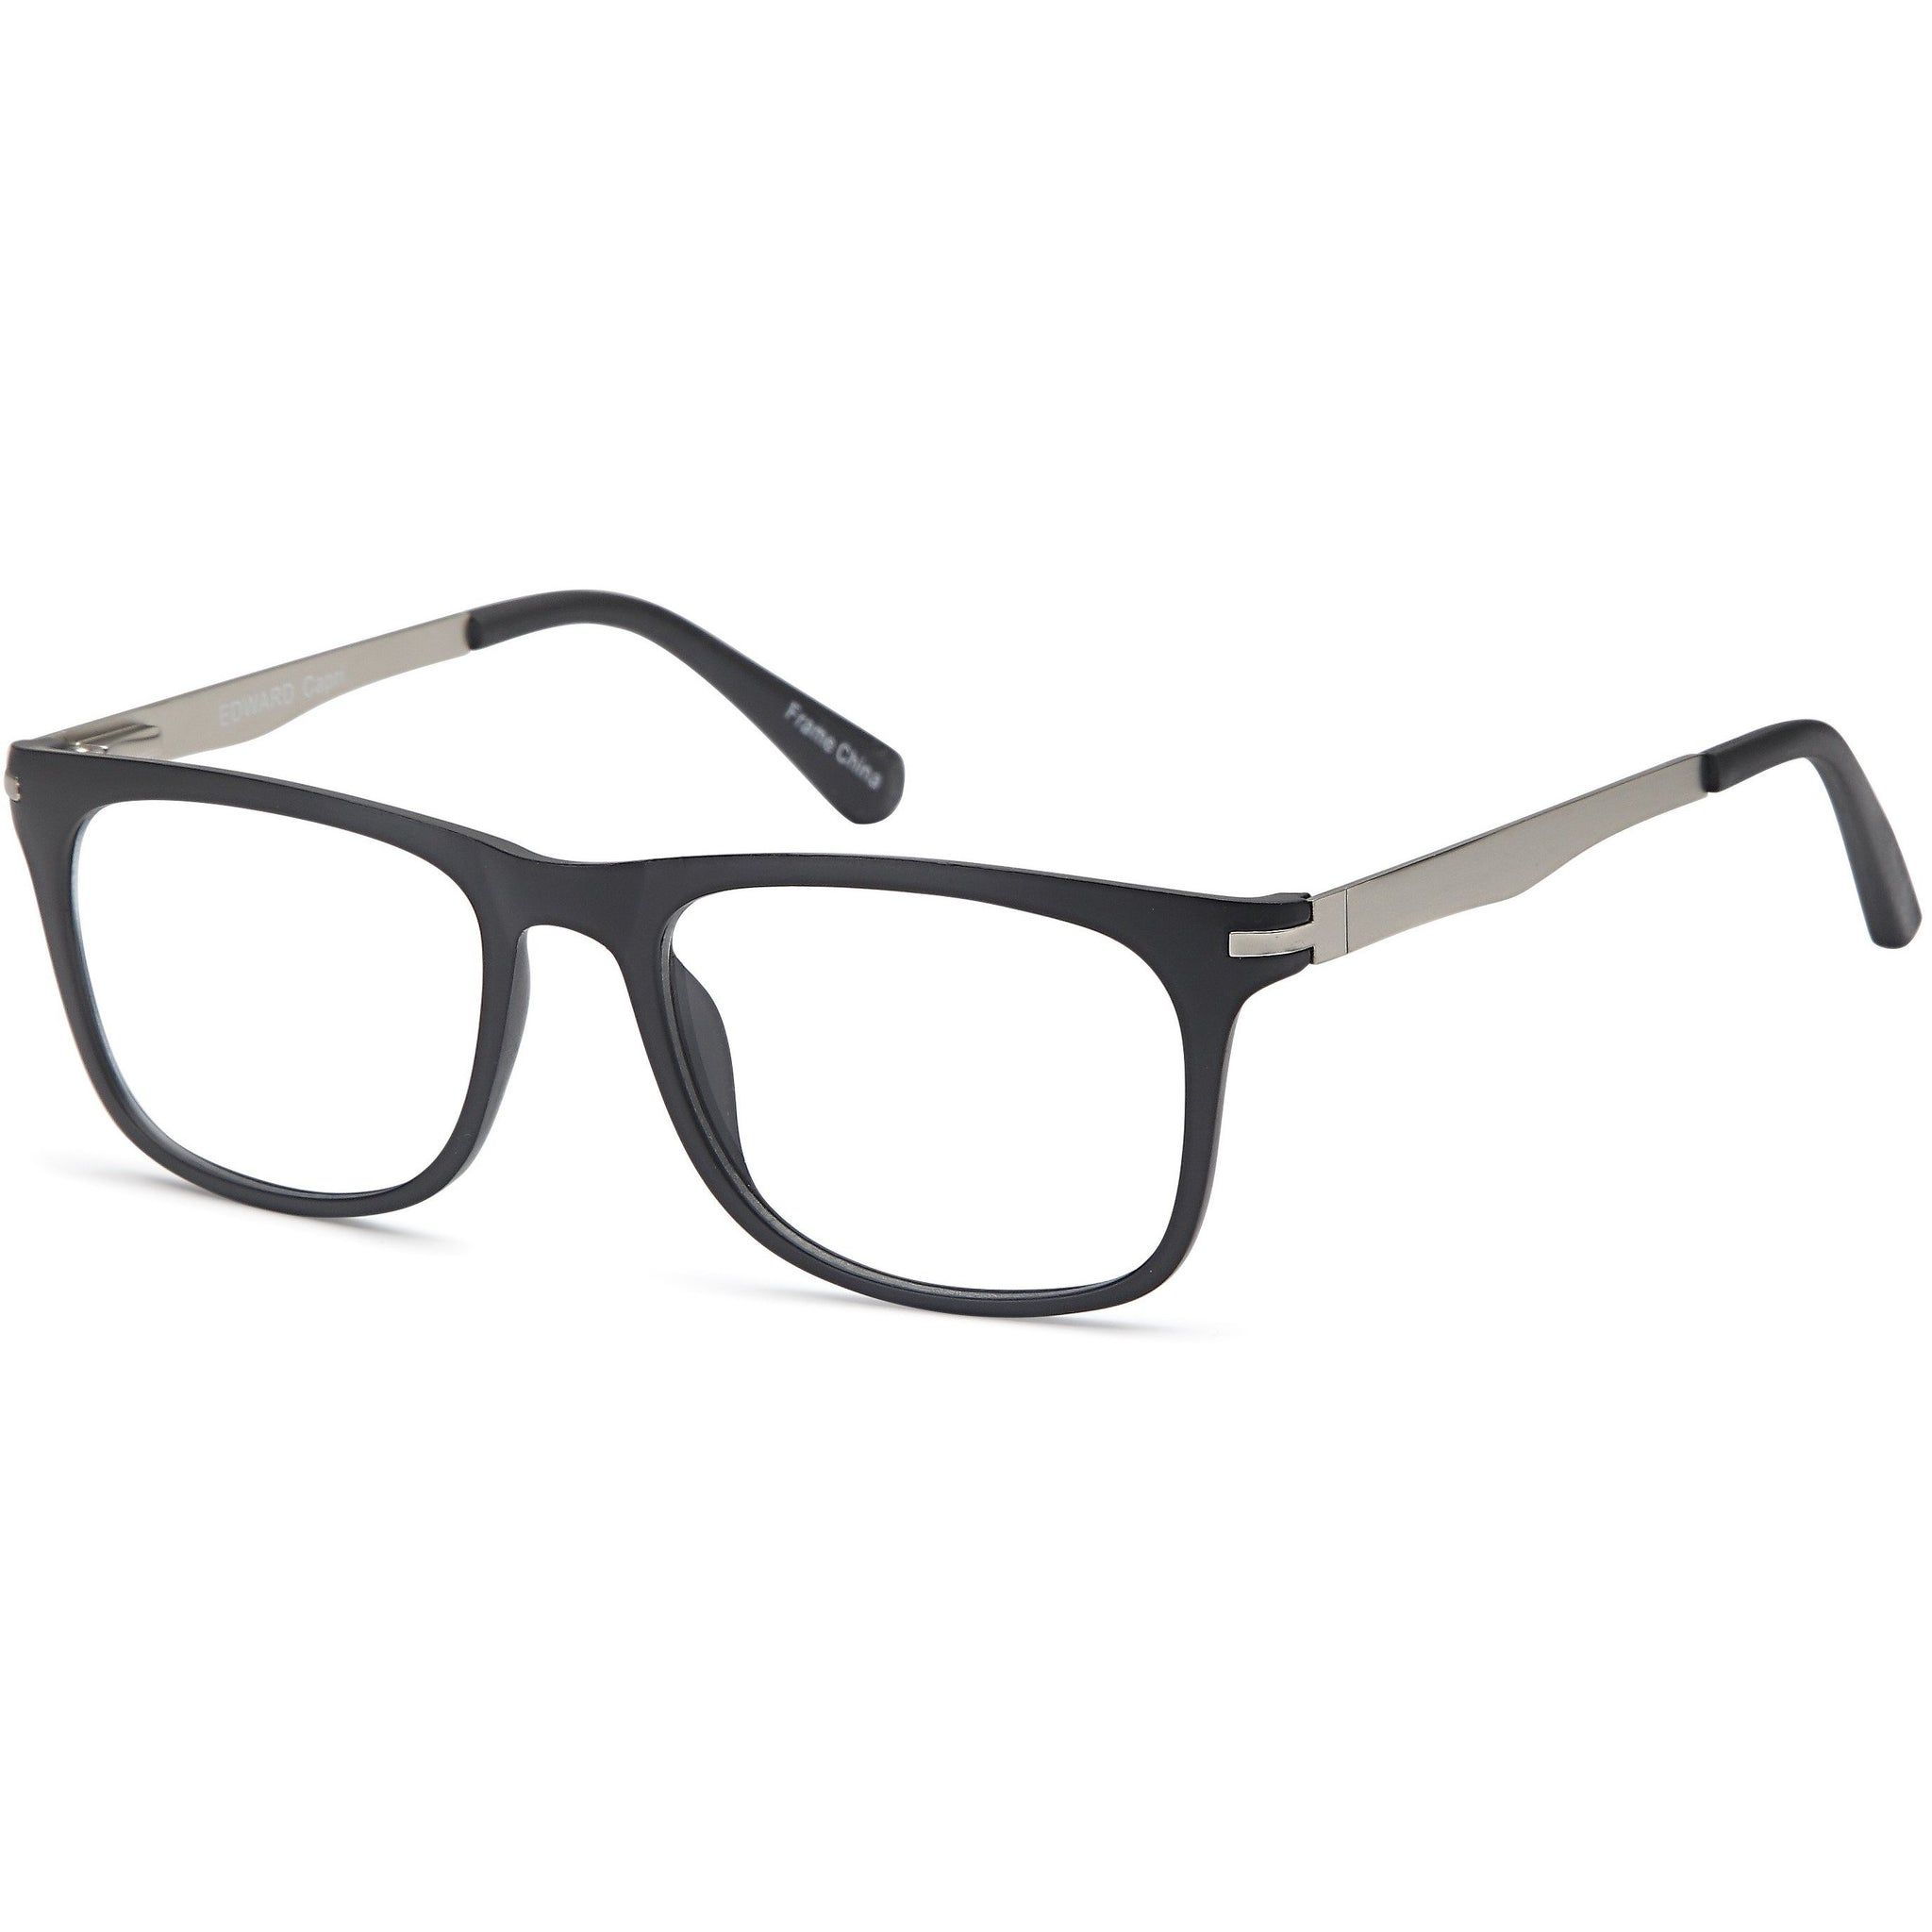 GEN Y Prescription Glasses EDWARD Eyeglasses Frame